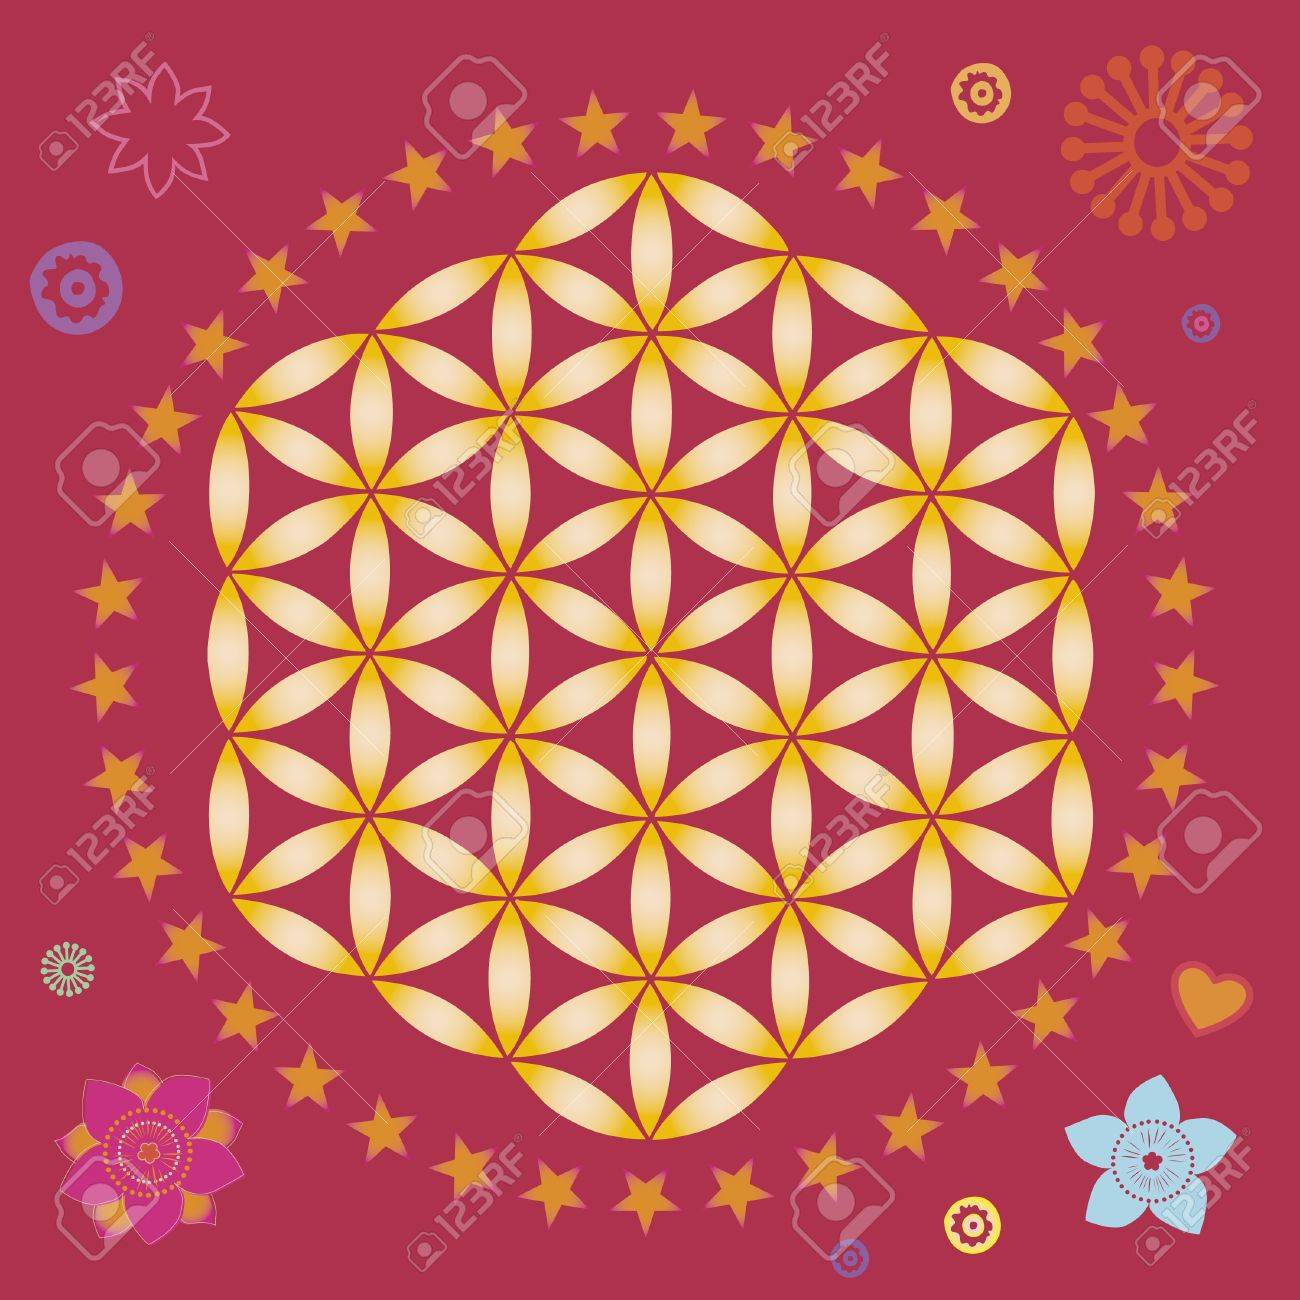 flower elements and mandalas with esoteric sense for yoga practice and design for health and wellbeing Stock Vector - 18437850